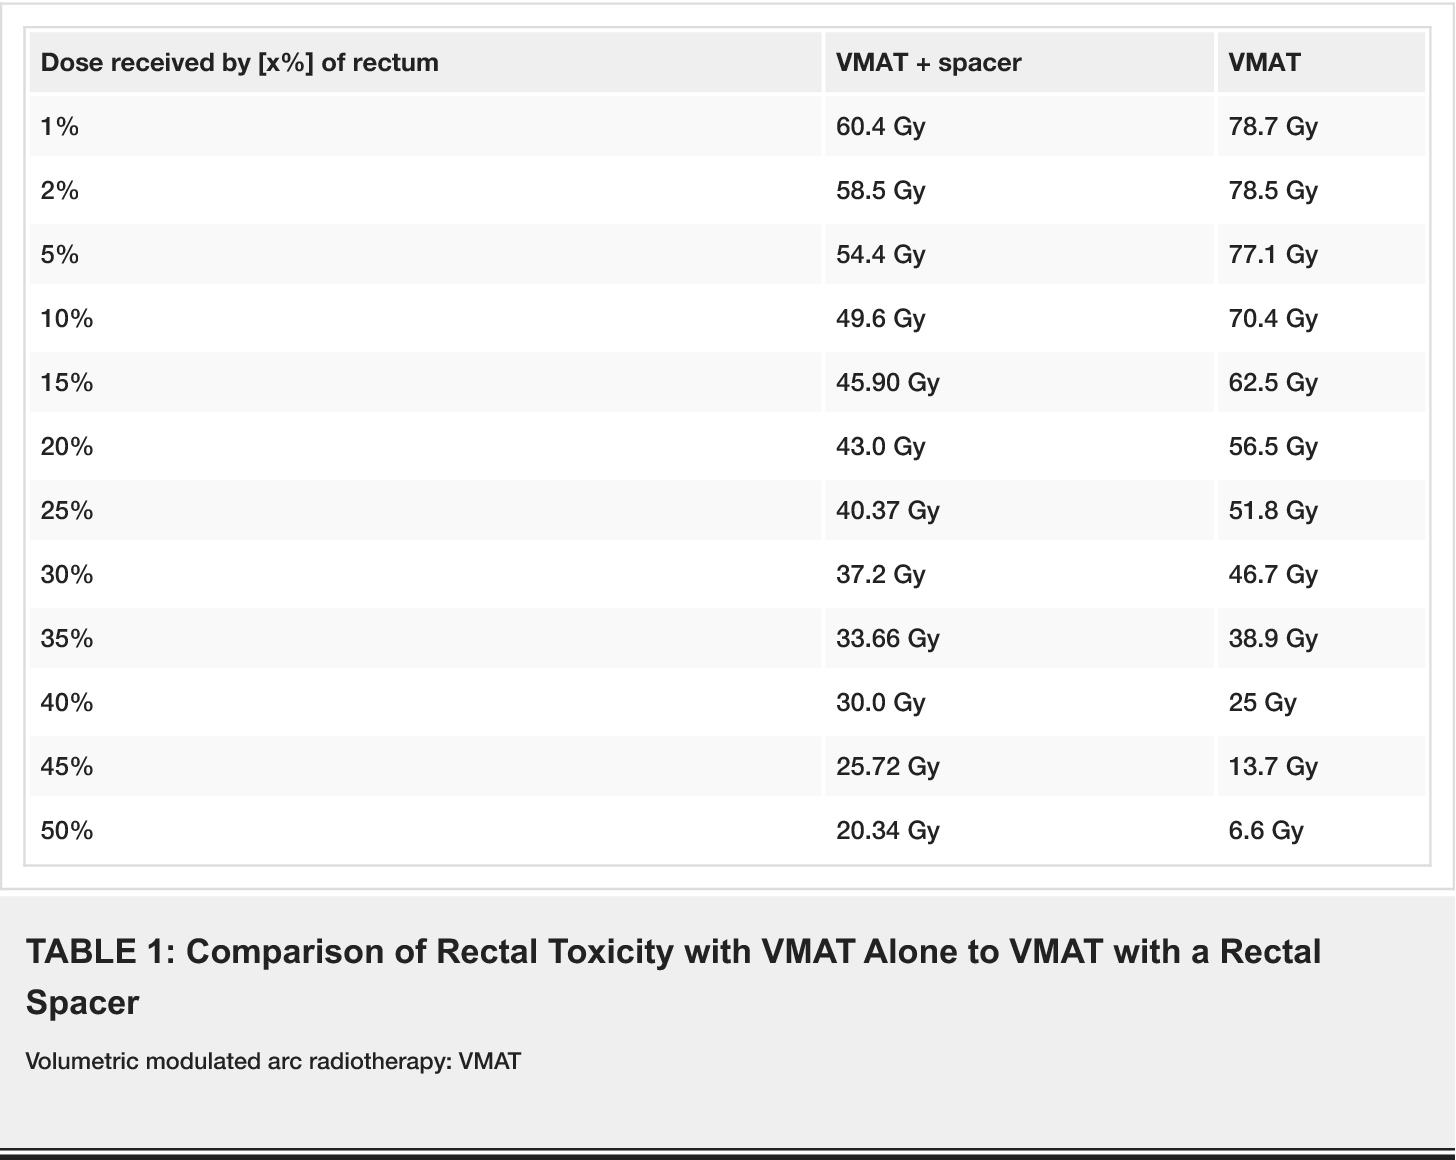 TABLE 1: Comparison of Rectal Toxicity with VMAT Alone to VMAT with a Rectal